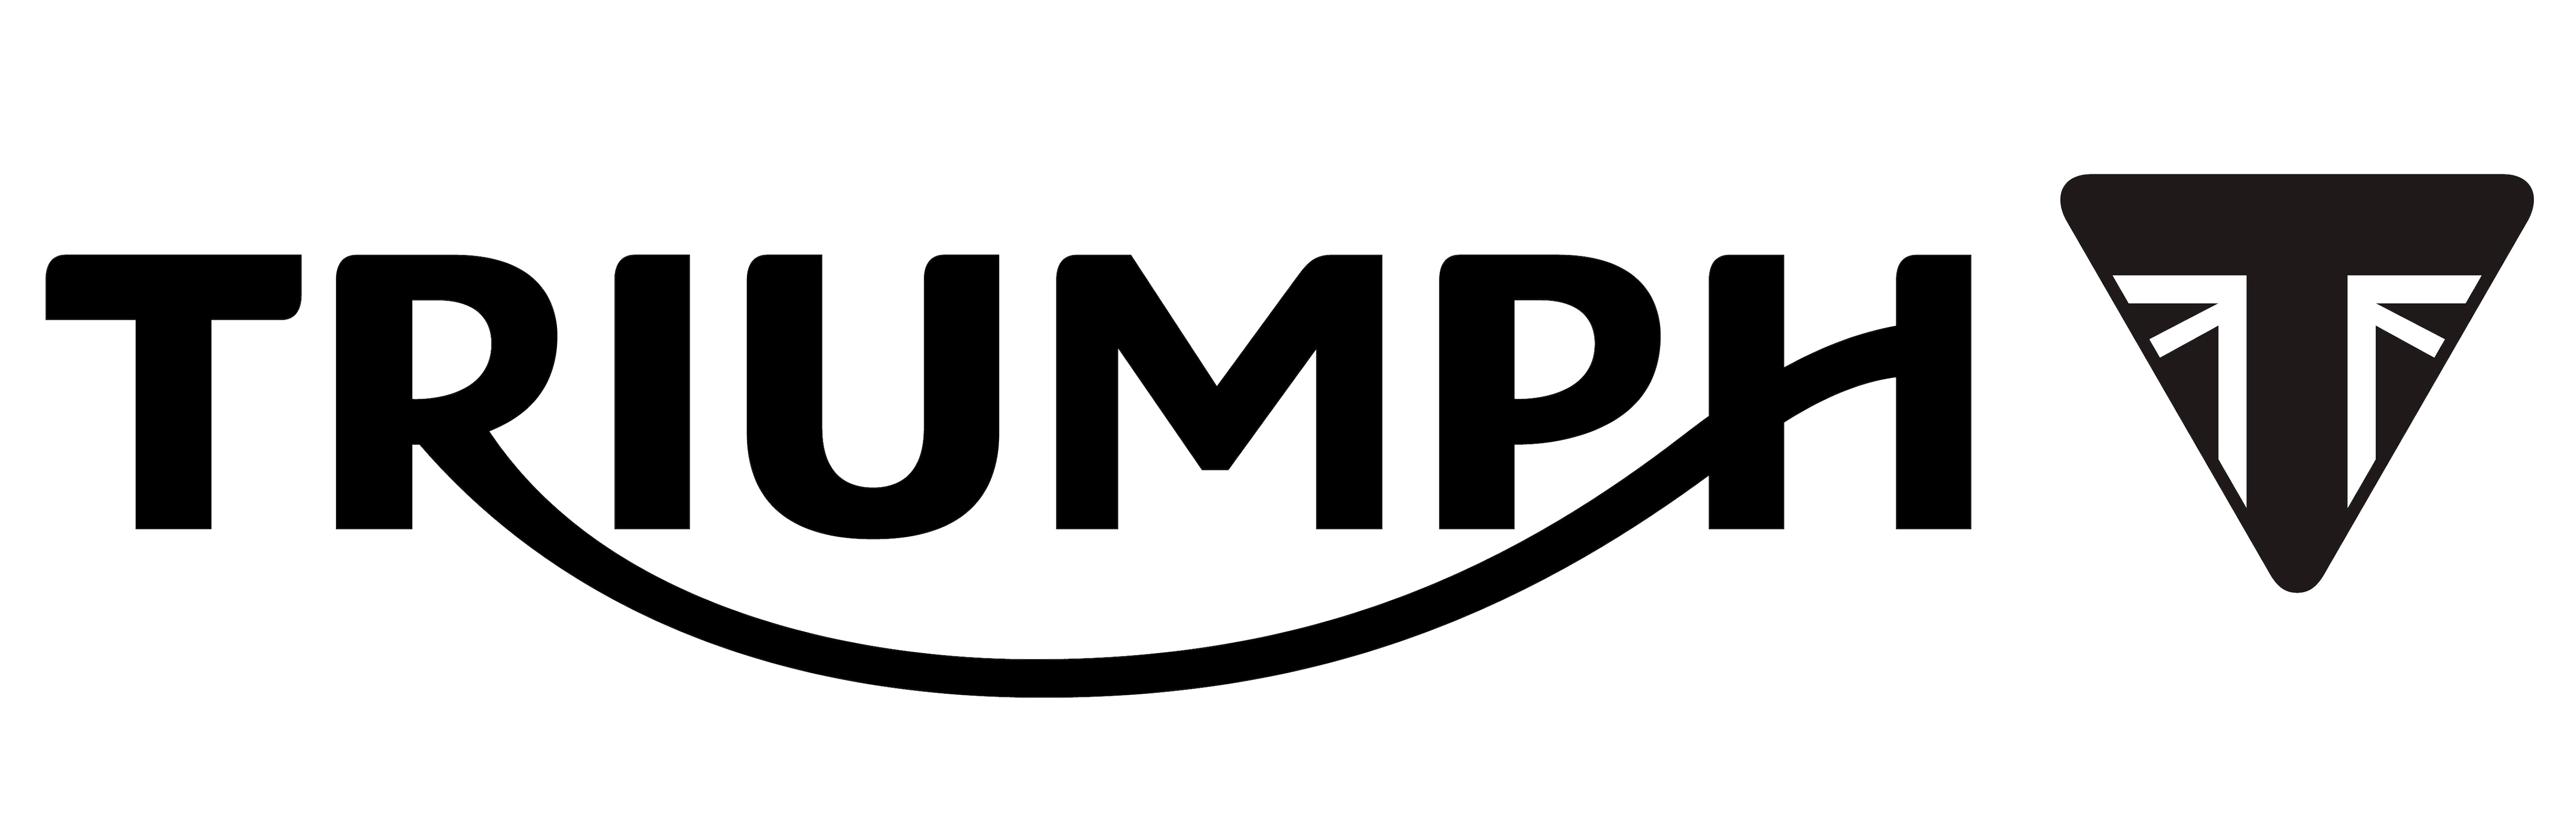 Triumph Motorcycles Offers Free Accessories More Bikedekho